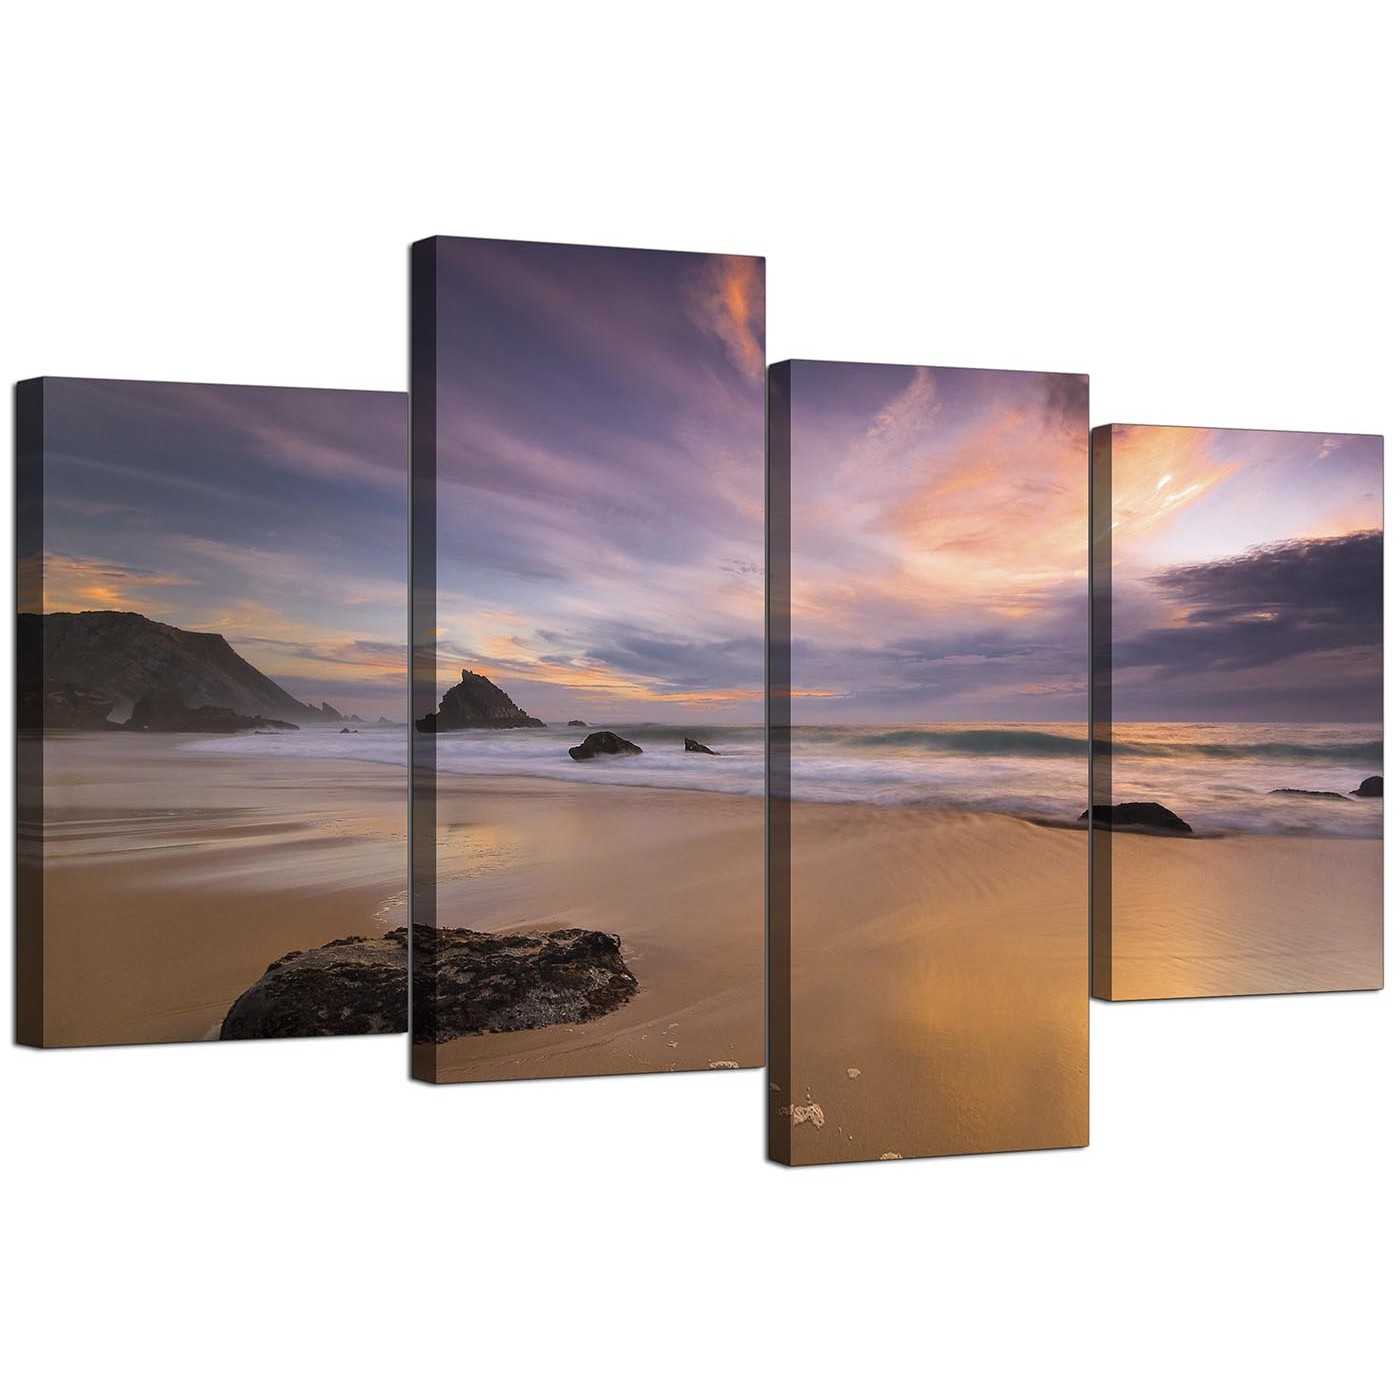 Cheap Canvas Pictures Canvas Prints Of A Beach Sunset For Your Kitchen 4 Panel